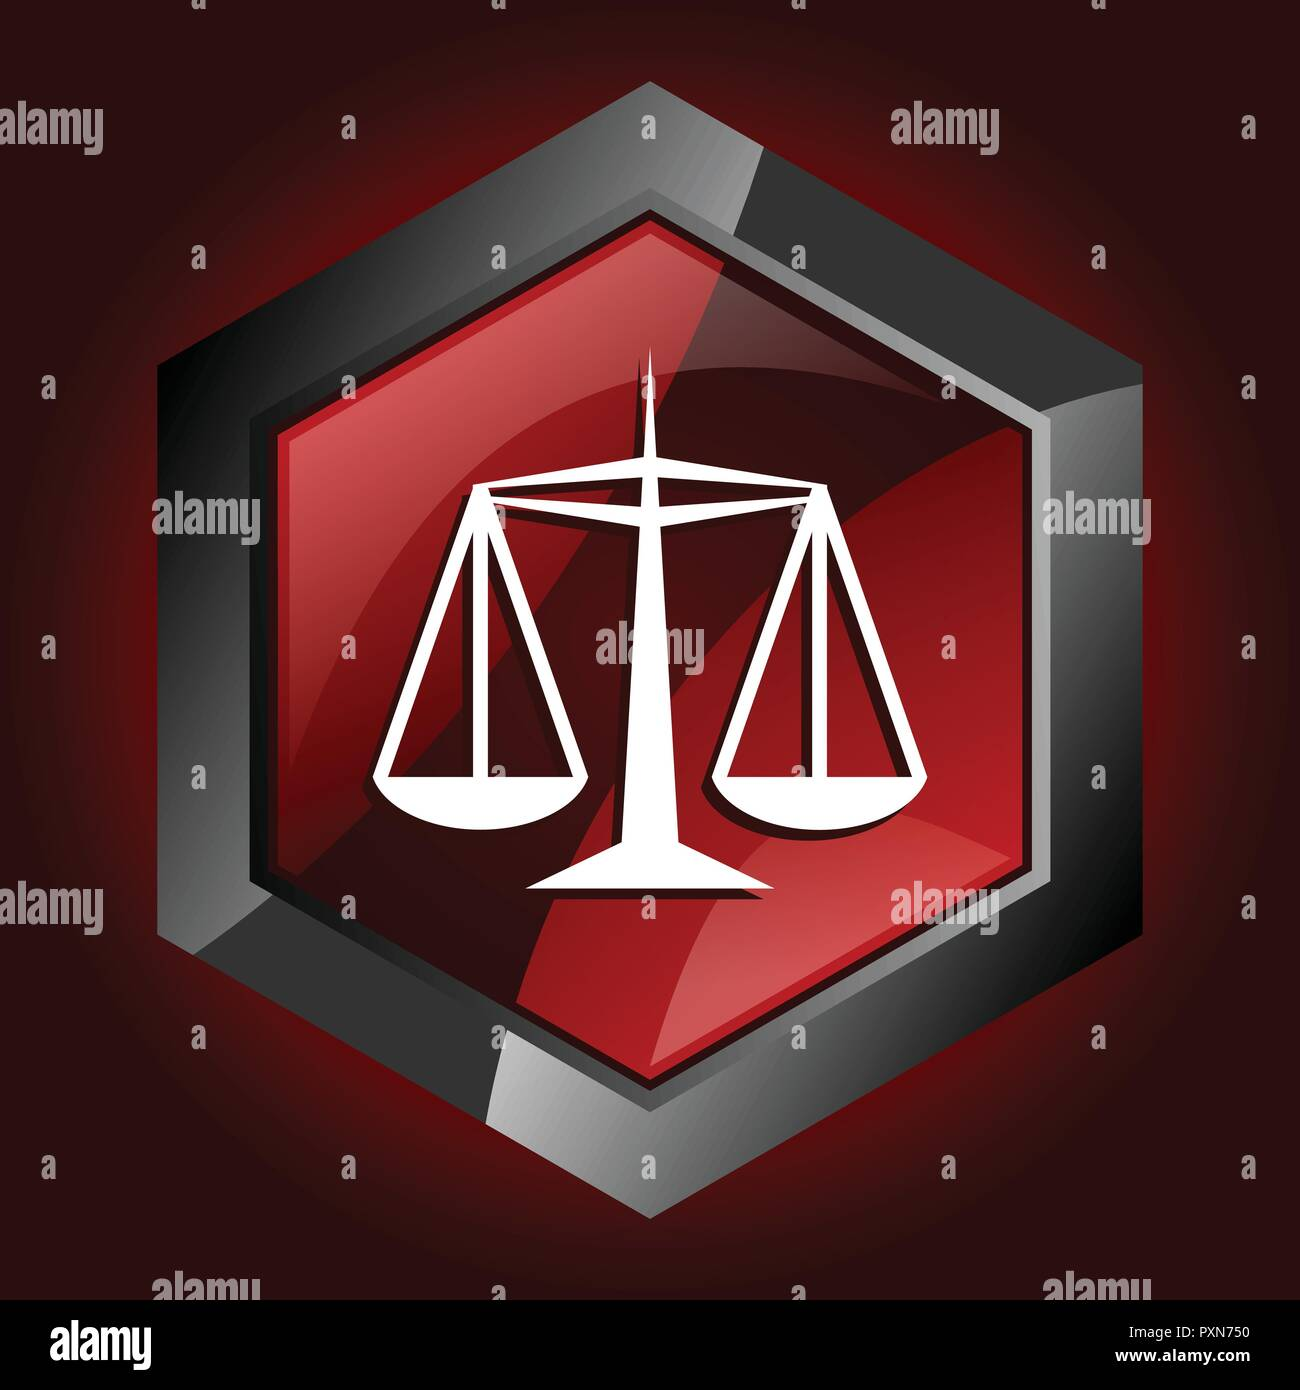 justice law legal court equality scale hexagon dark red vector icon - Stock Vector